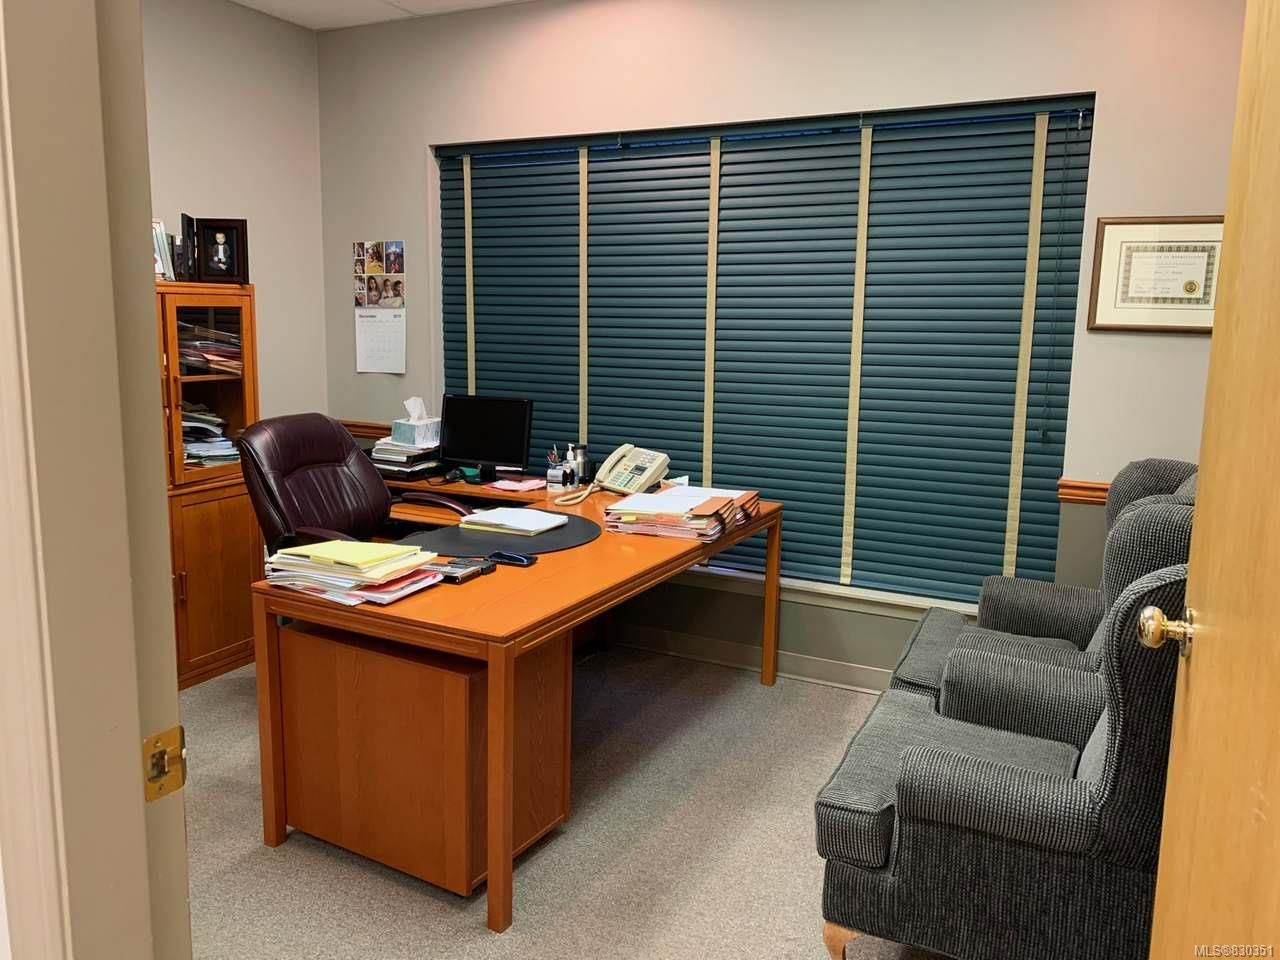 Photo 9: Photos: 2 5144 Metral Dr in NANAIMO: Na Pleasant Valley Office for lease (Nanaimo)  : MLS®# 830351